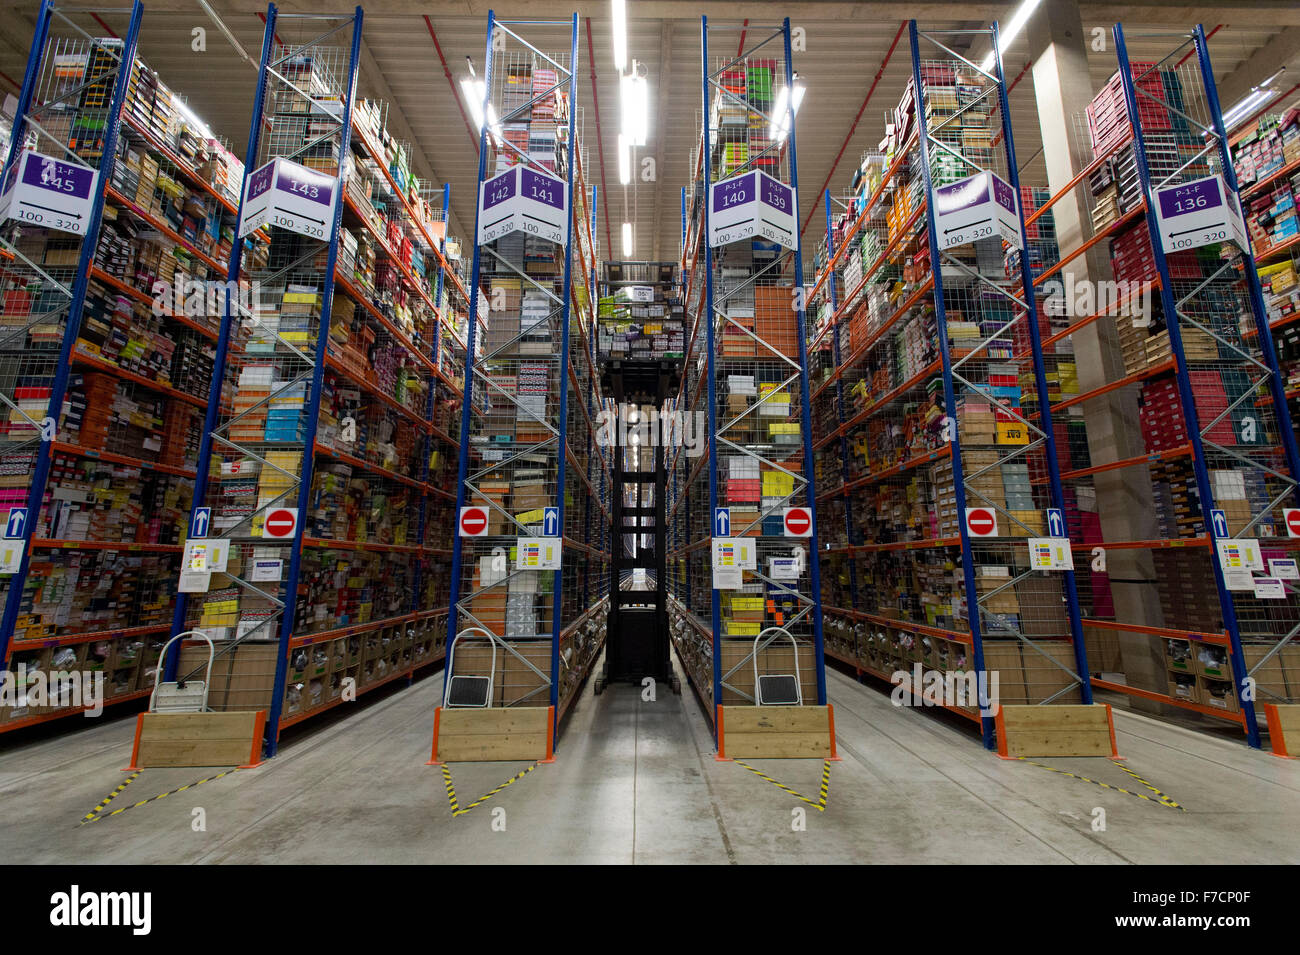 Amazon Fulfillment Live Chat >> The Amazon warehouse fulfillment centre in Swansea, South Wales Stock Photo: 90635119 - Alamy